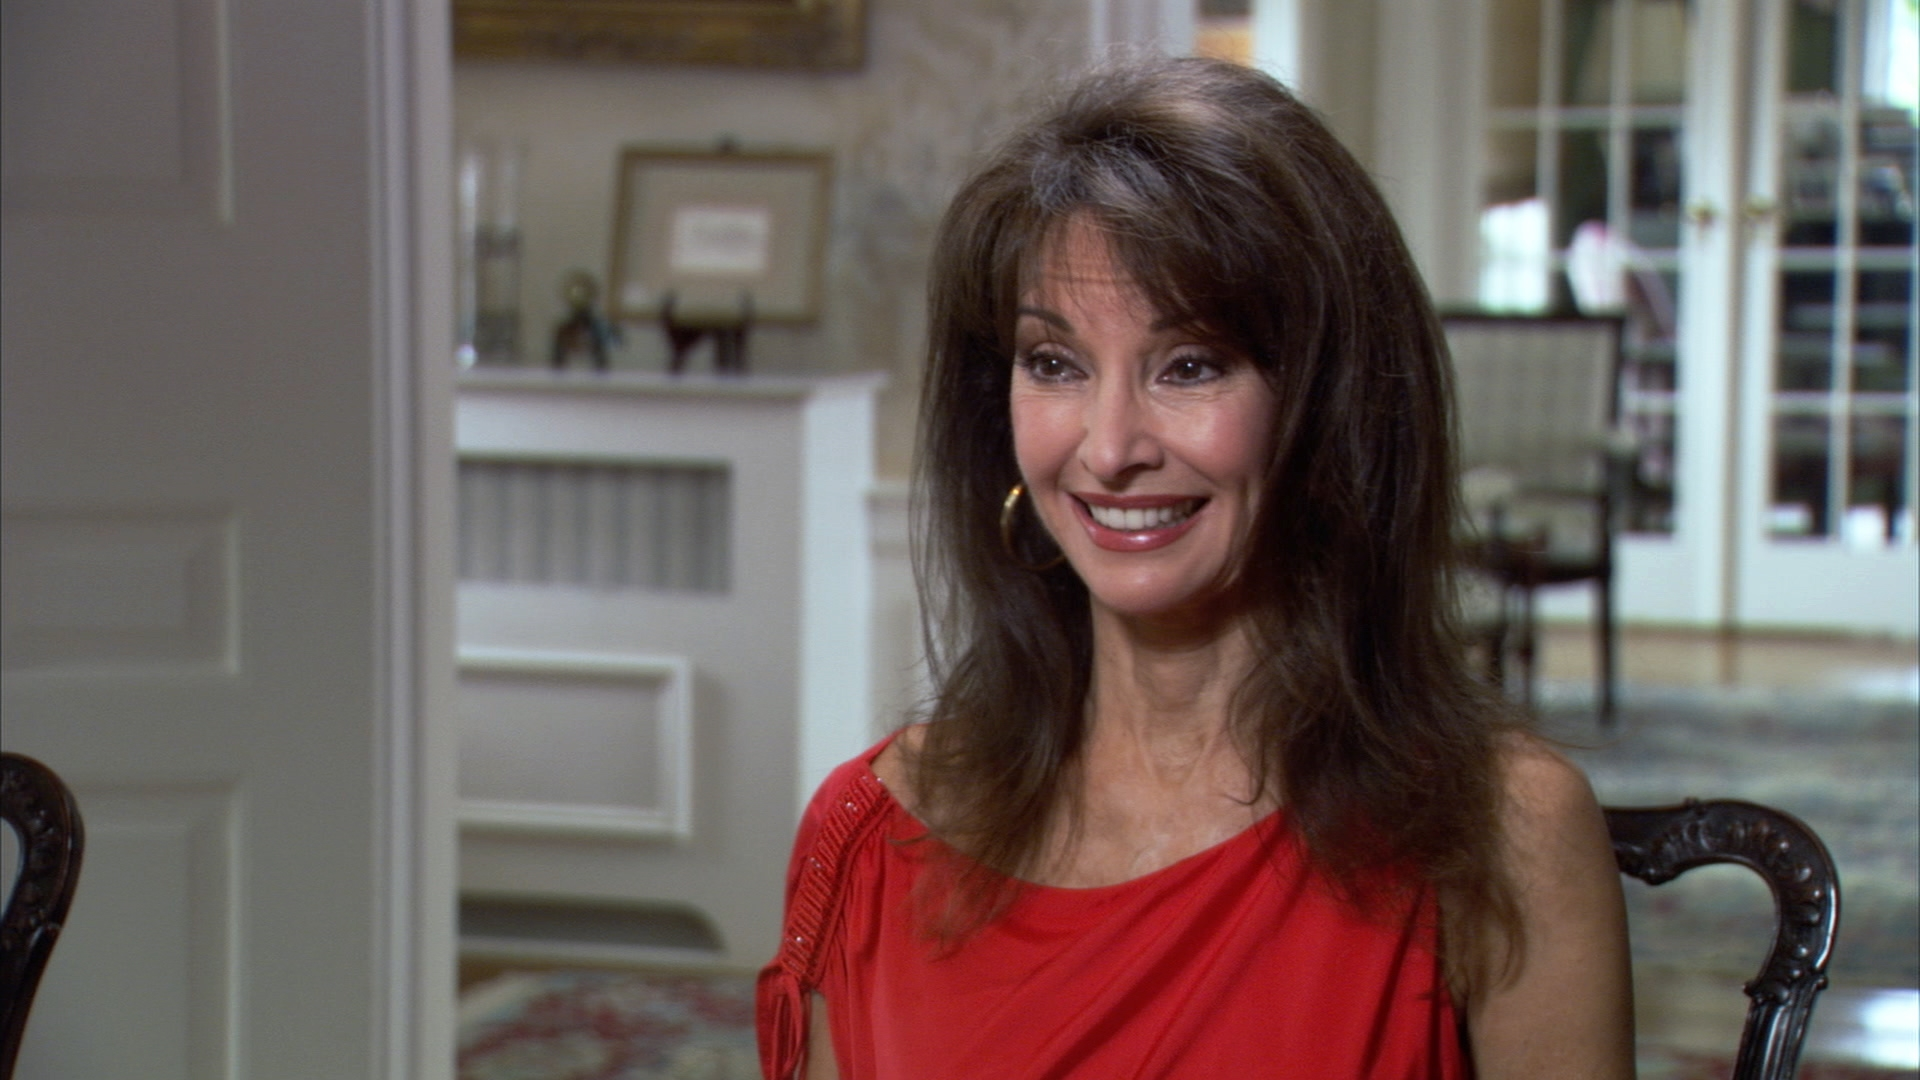 'Long Island Medium ': Susan Lucci Hears from Her Grandmother